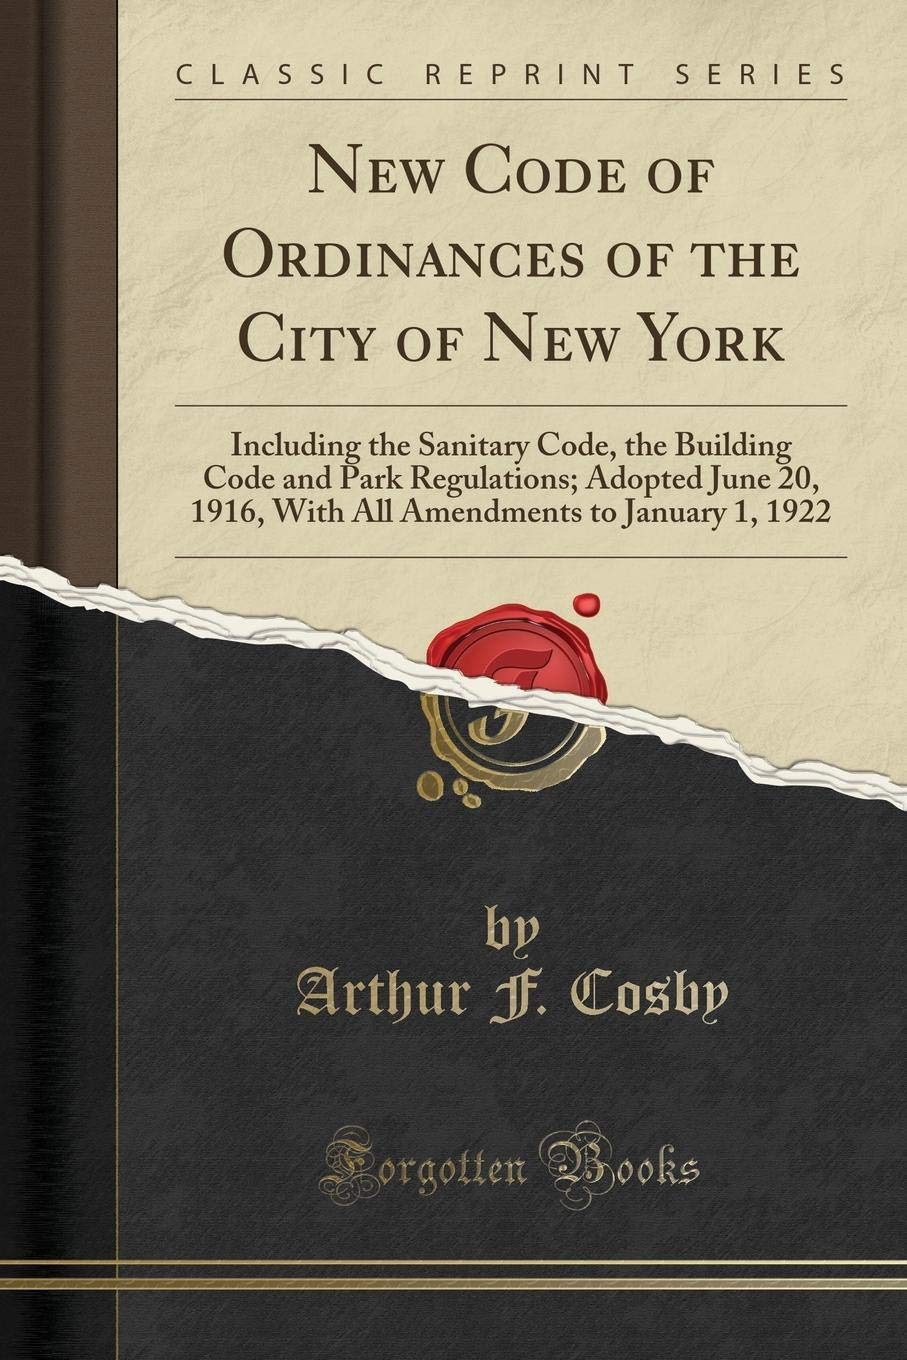 Read Online New Code of Ordinances of the City of New York: Including the Sanitary Code, the Building Code and Park Regulations; Adopted June 20, 1916, With All Amendments to January 1, 1922 (Classic Reprint) pdf